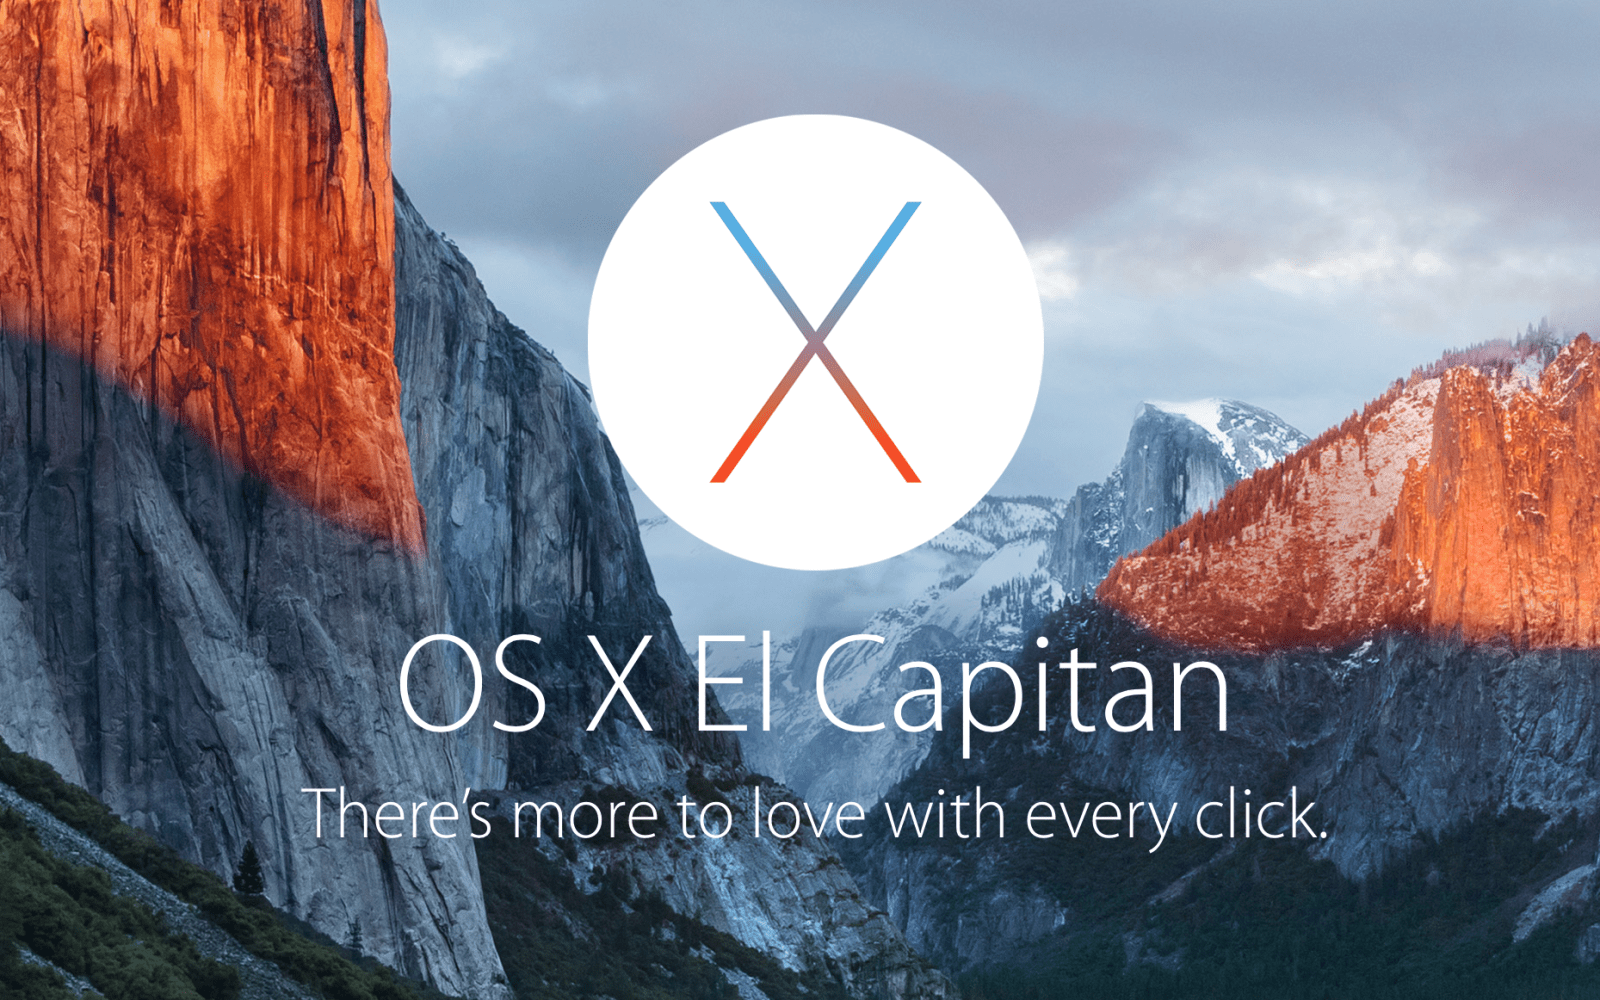 Apple releases os x el capitan featuring full screen split view apple releases os x el capitan featuring full screen split view new notes revamped spotlight search safari 9 and more ccuart